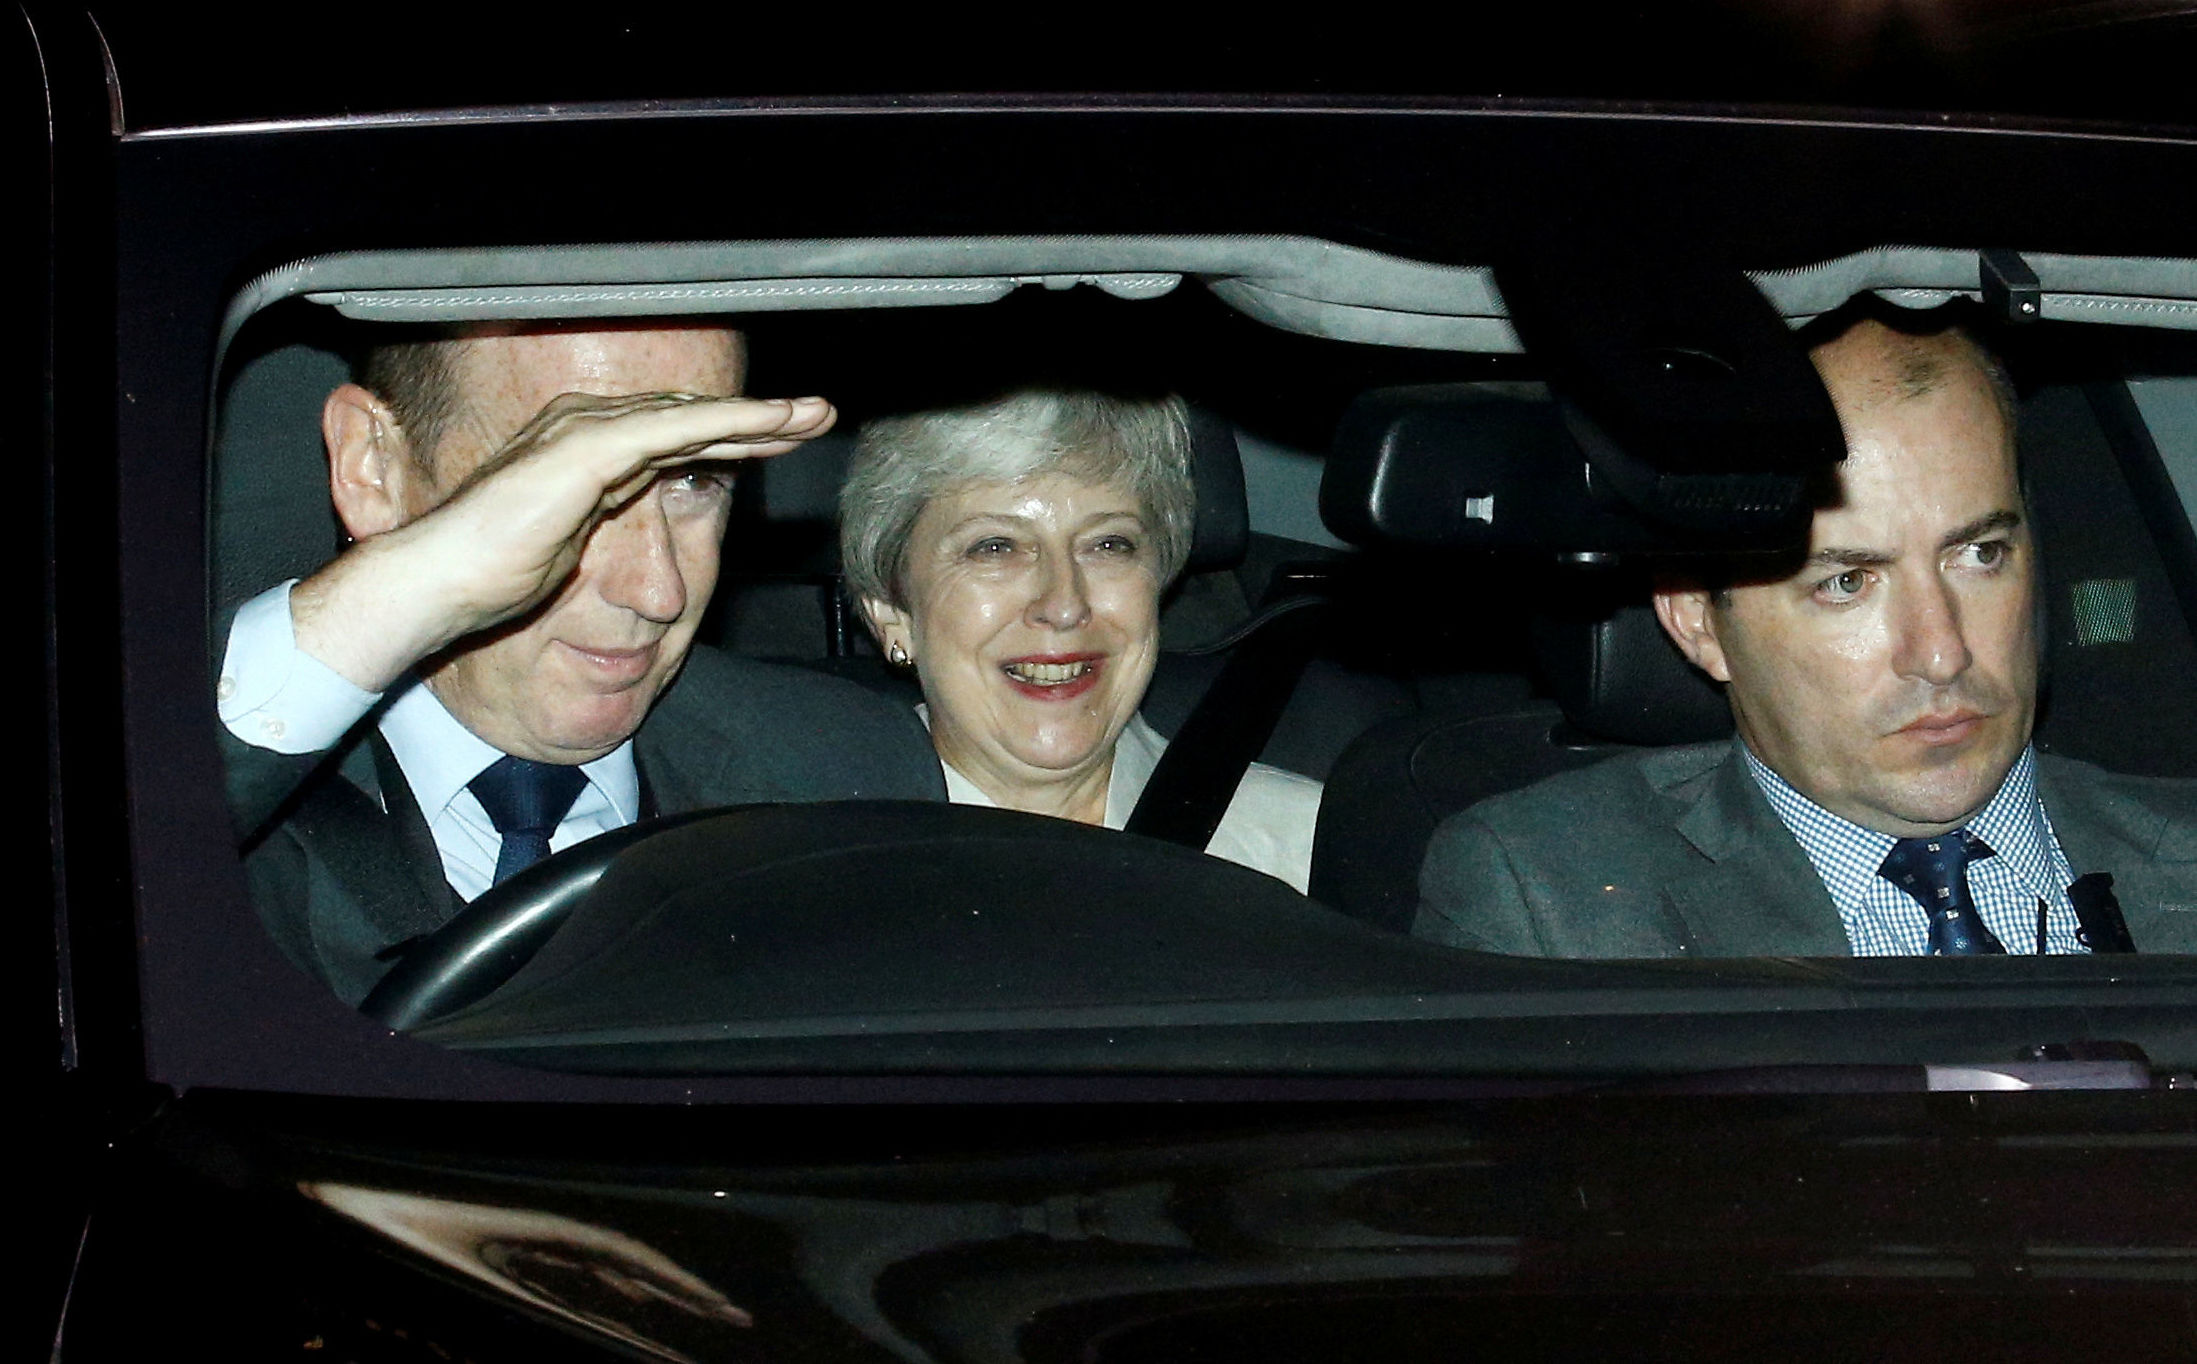 Britain's former Prime Minister Theresa May leaves the Houses of the Parliament in London, Britain, September 3, 2019